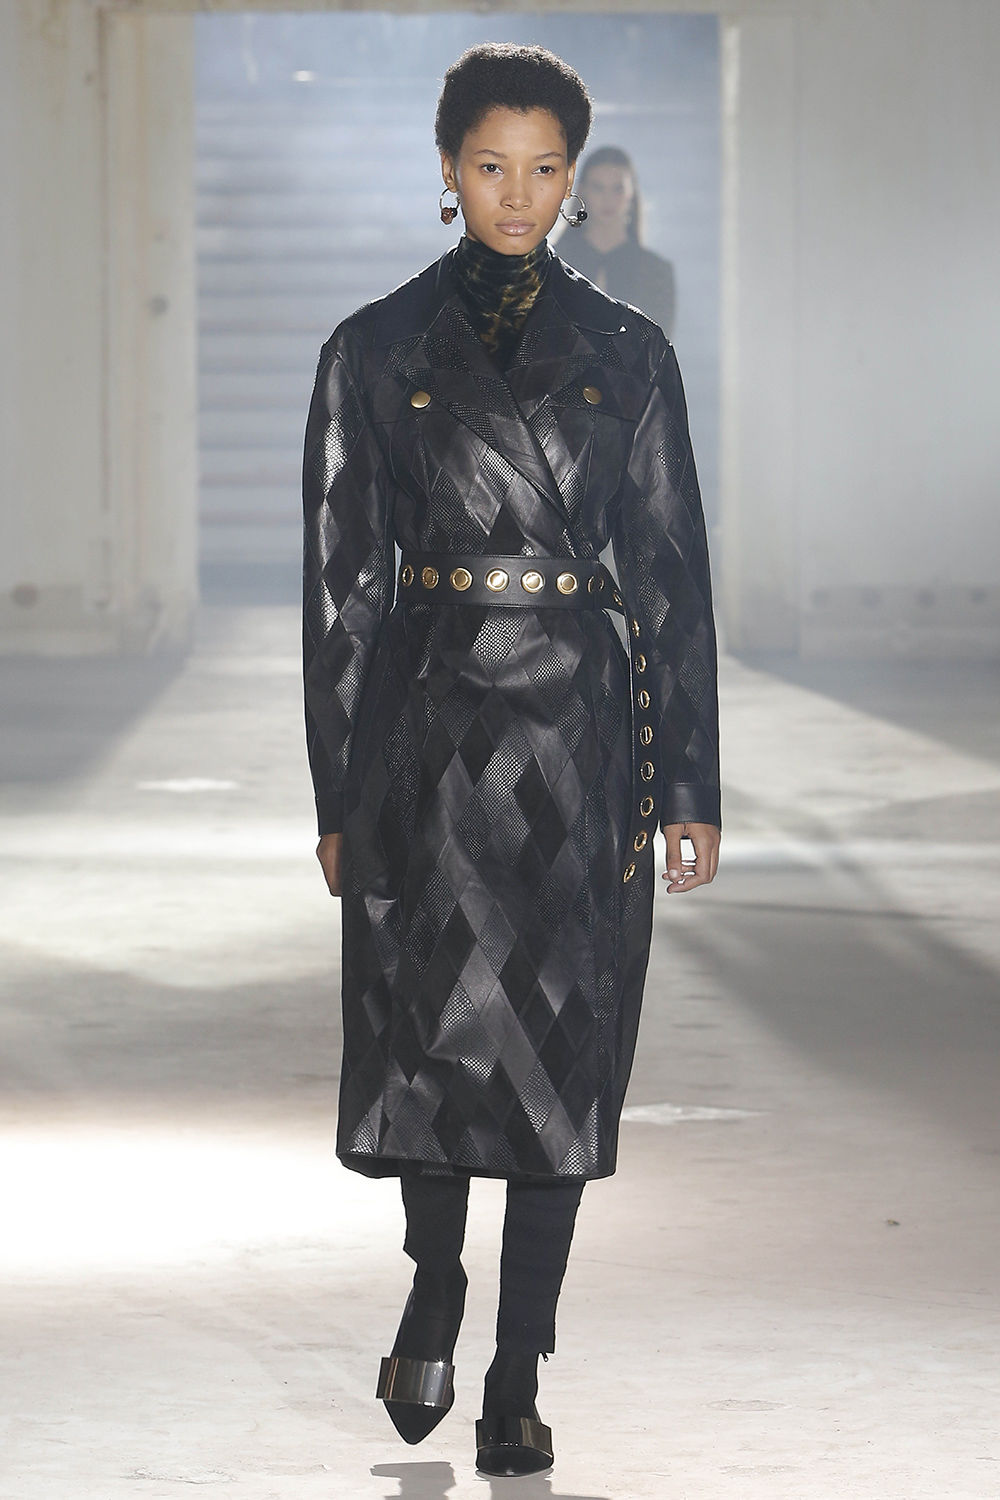 proenza schouler fall 2018 runway look 8